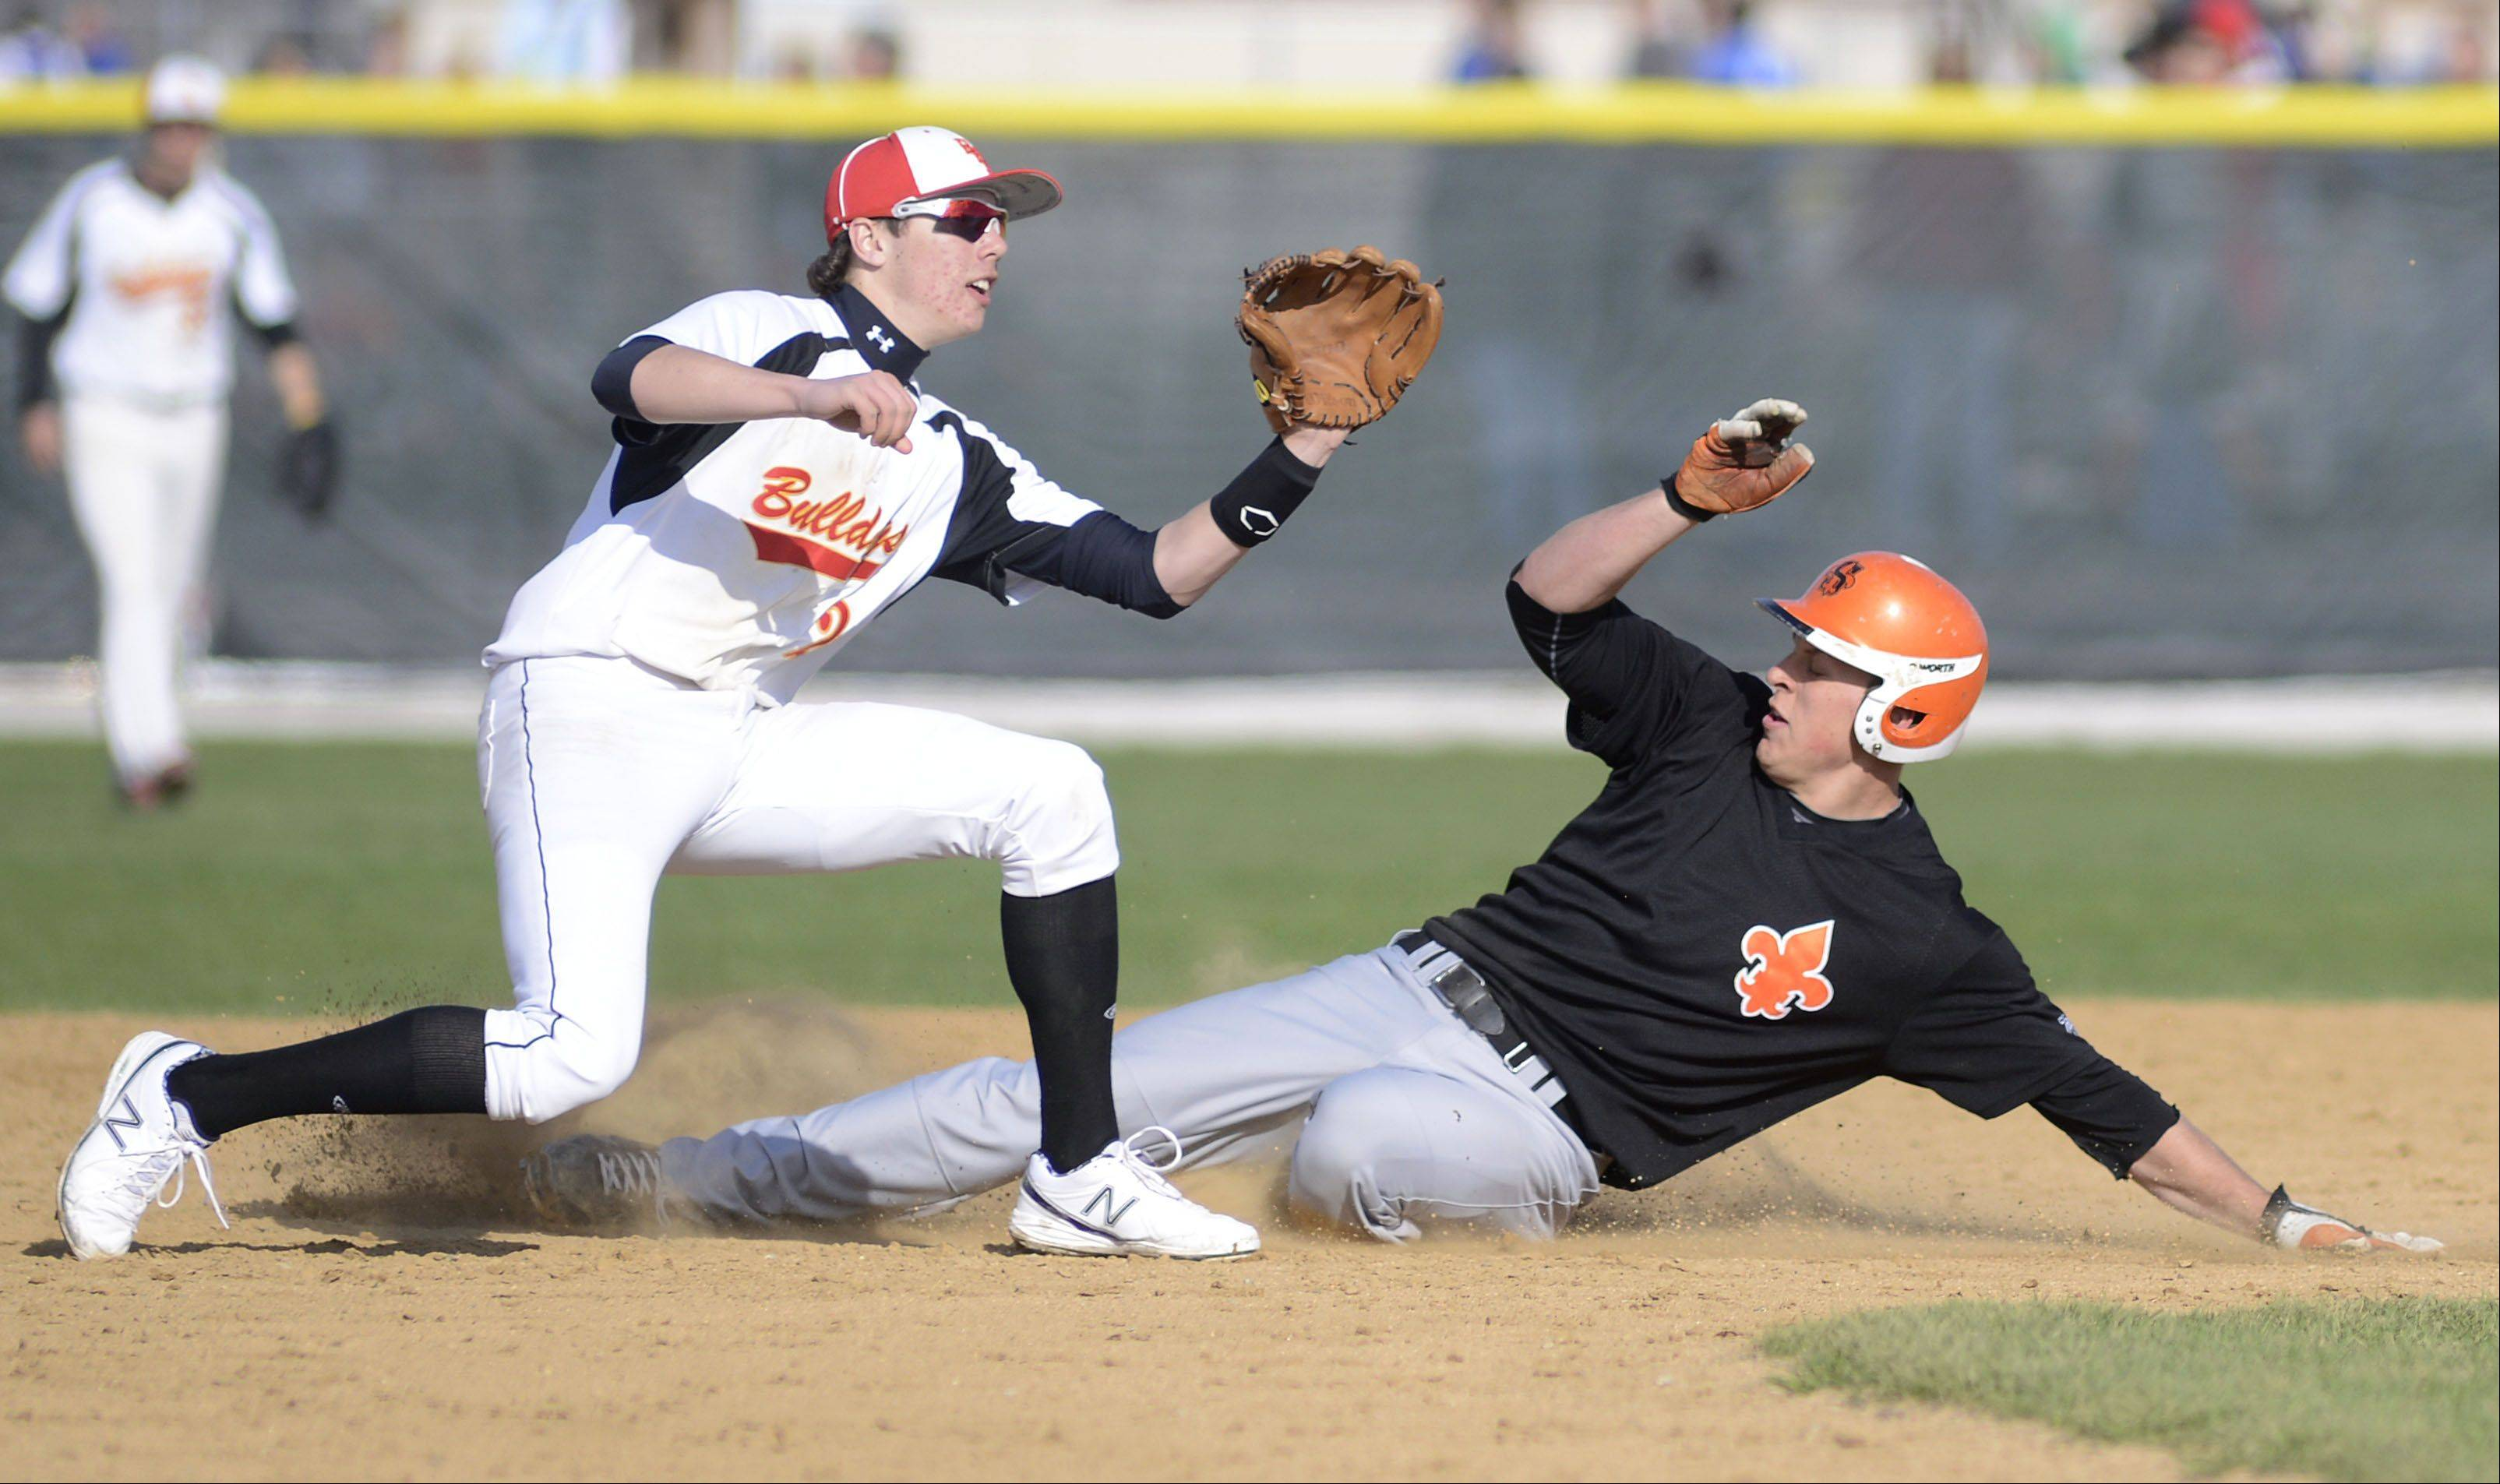 St. Charles East's Joe Hoscheit is safe on second base from Batavia's Jeremy Schoessling in the third inning on Wednesday, April 24.